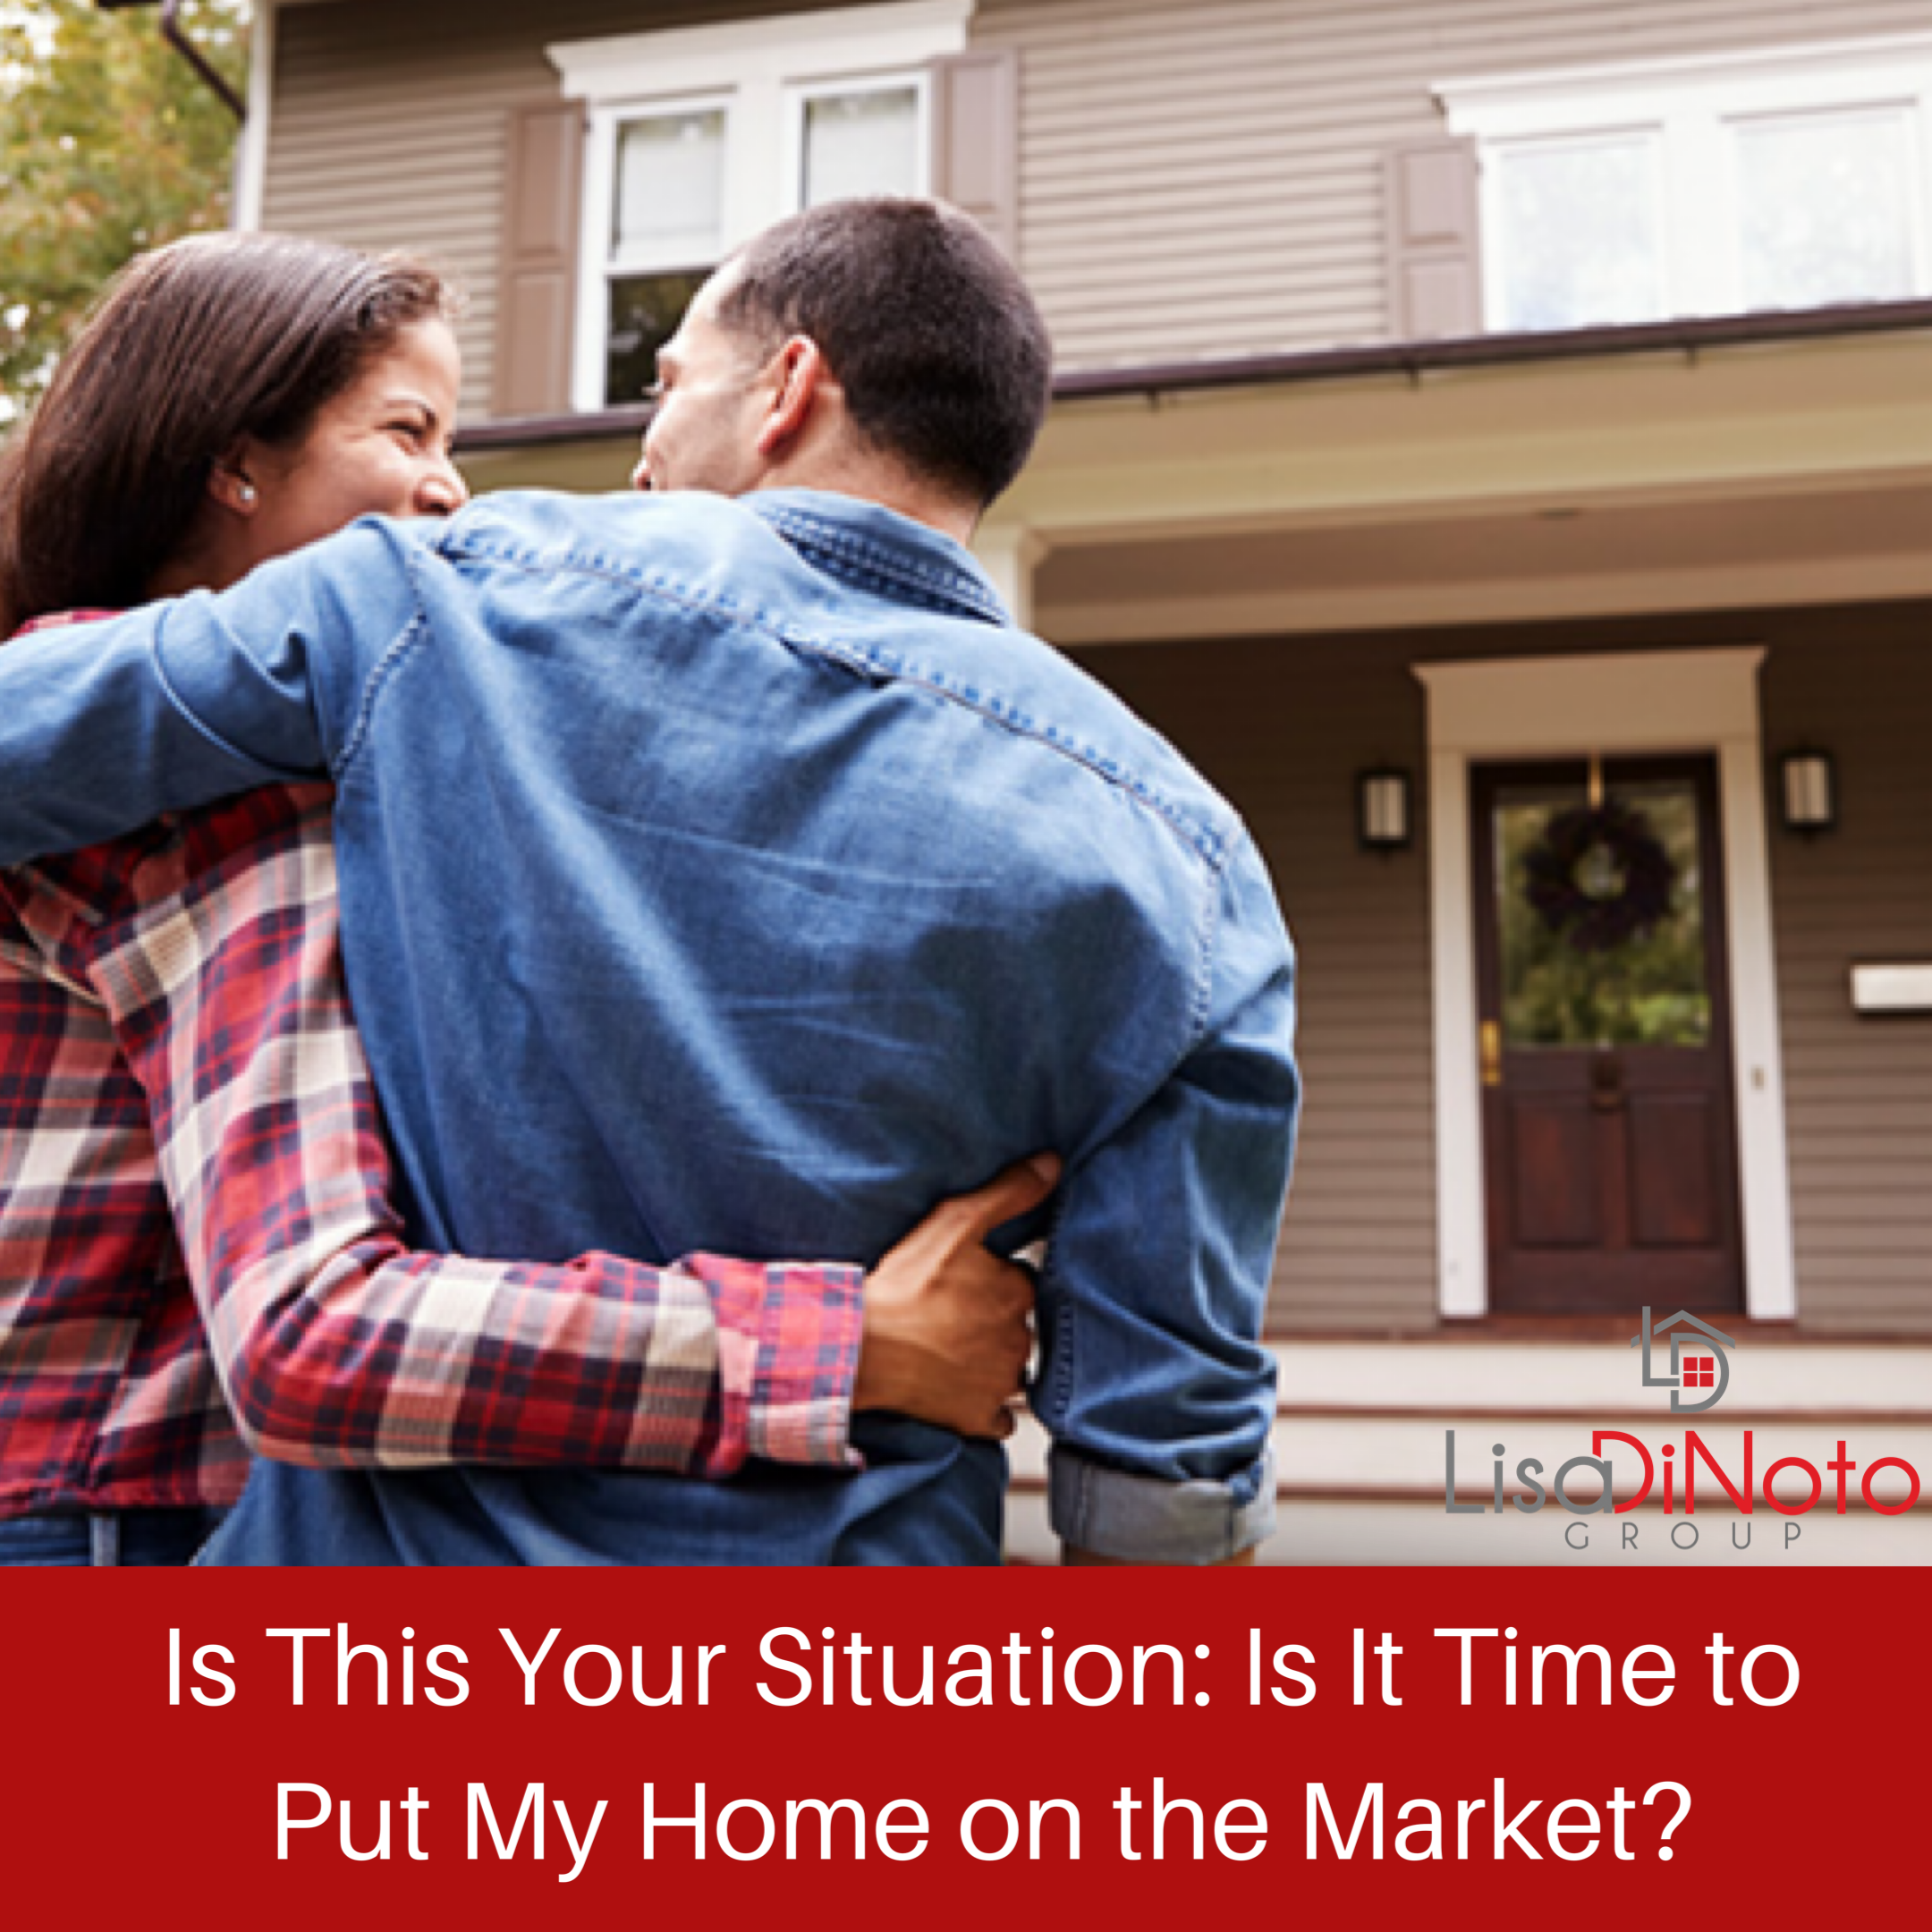 Is This Your Situation: Is It Time to Put My Home on the Market?